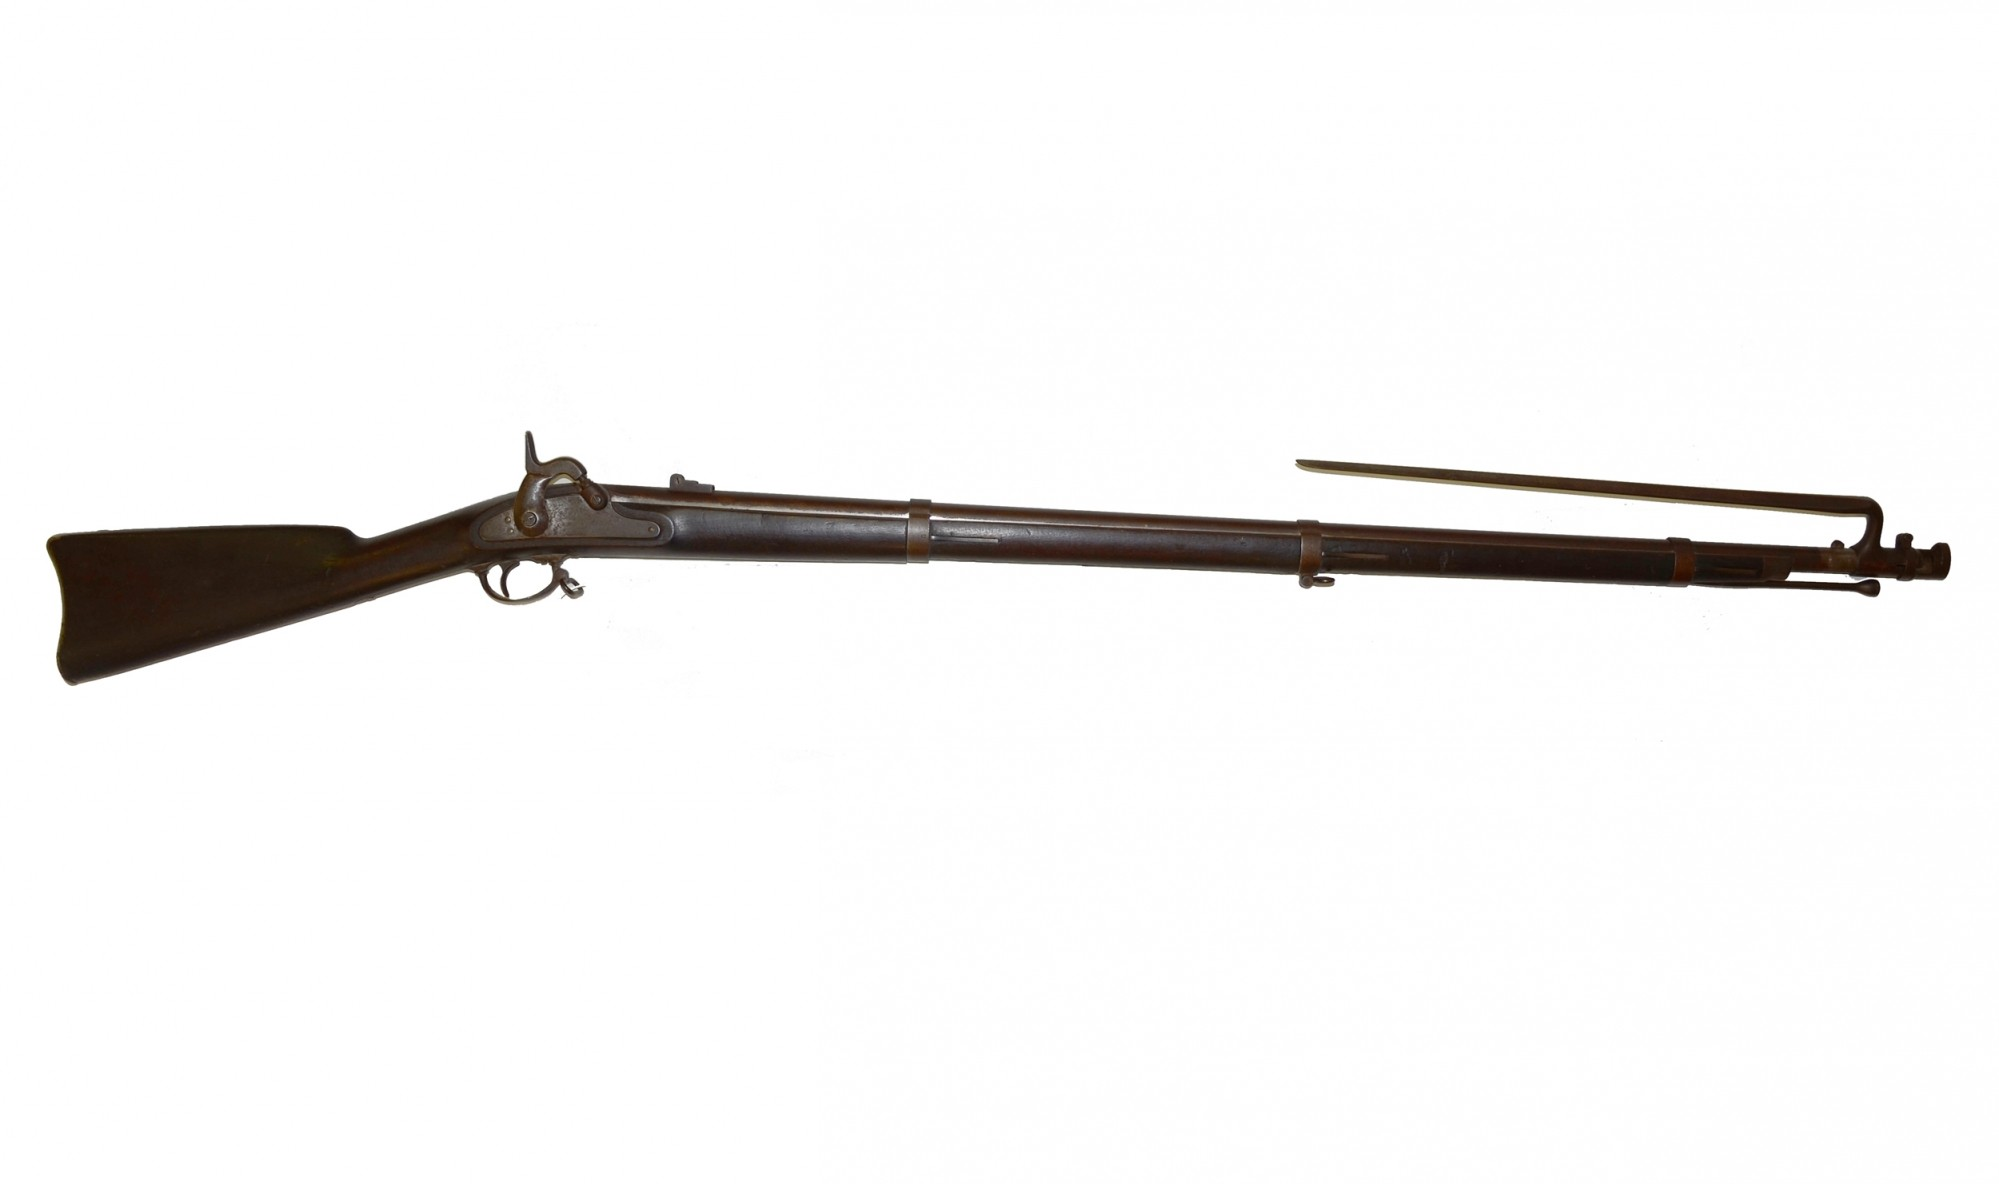 UNTOUCHED M1861 U.S. PERCUSSION 'TRENTON' CONTRACT MUSKET